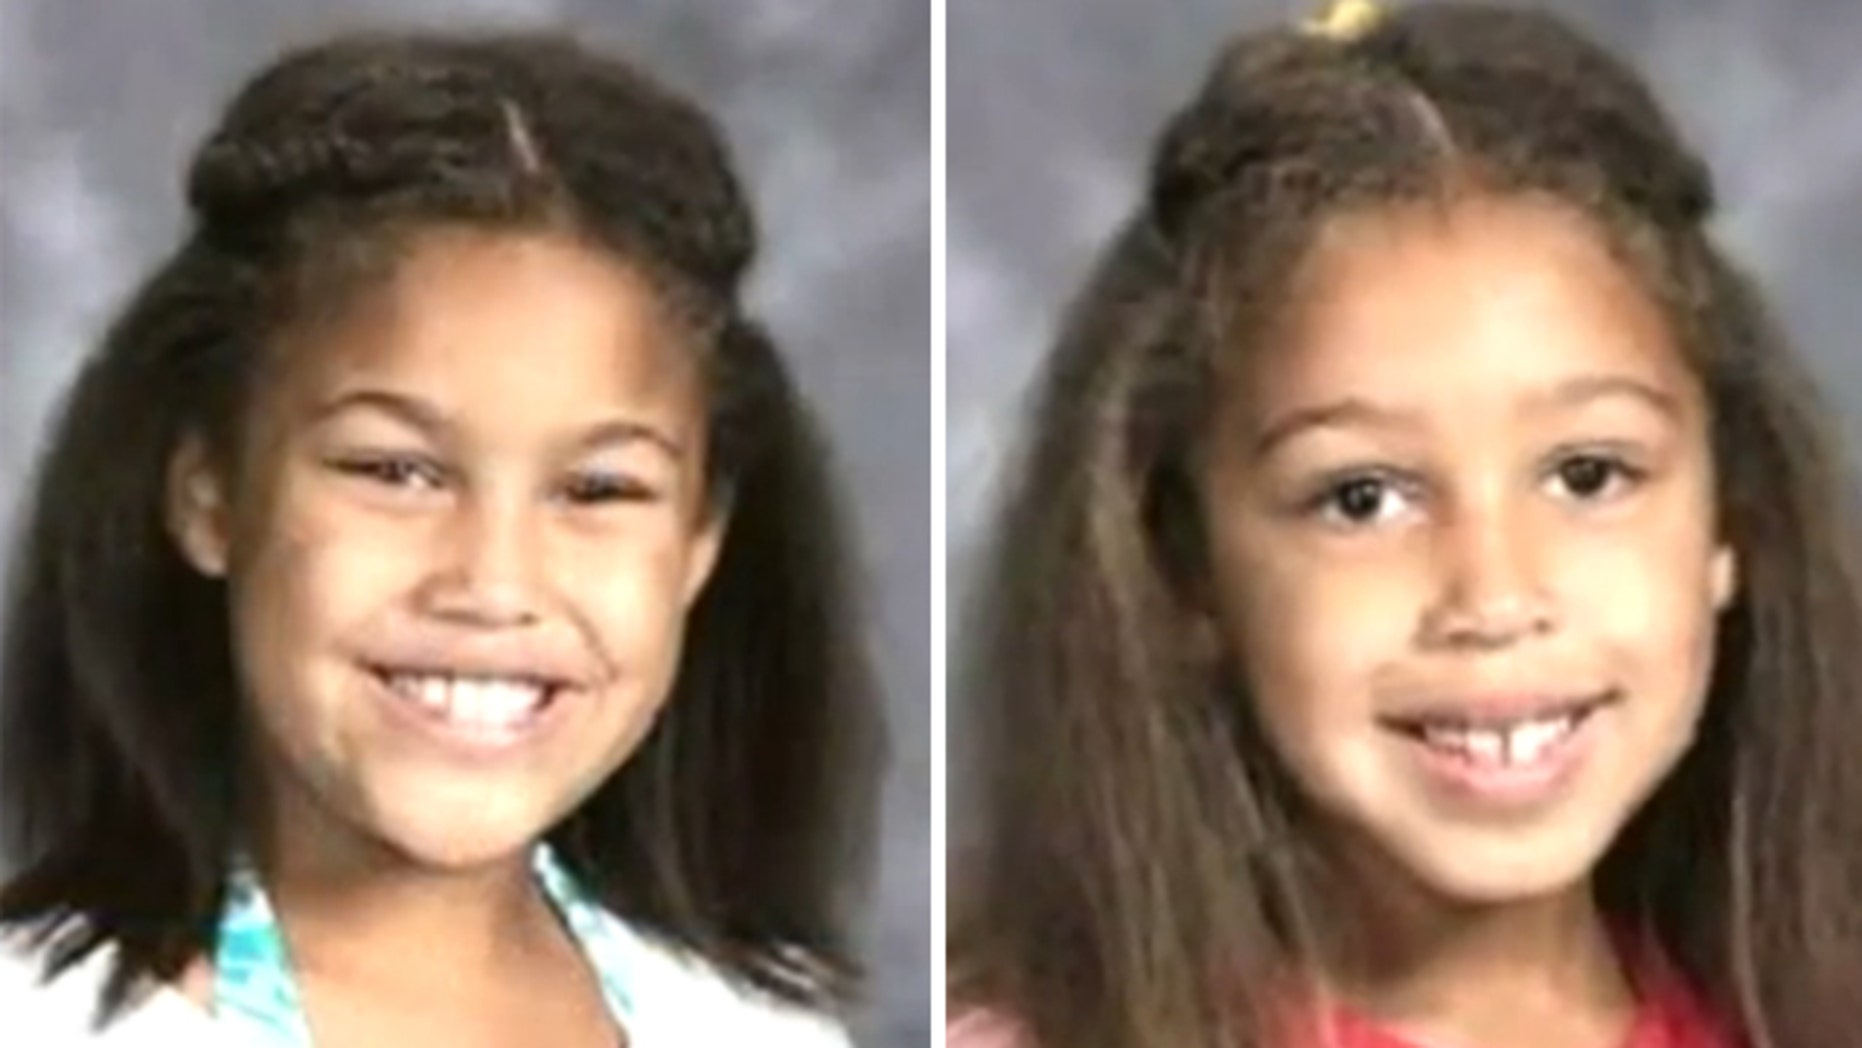 Mar. 18, 2012: This photo shows two of the Missouri girls found shot to death in a campground Saturday, along with their mother and younger sister.